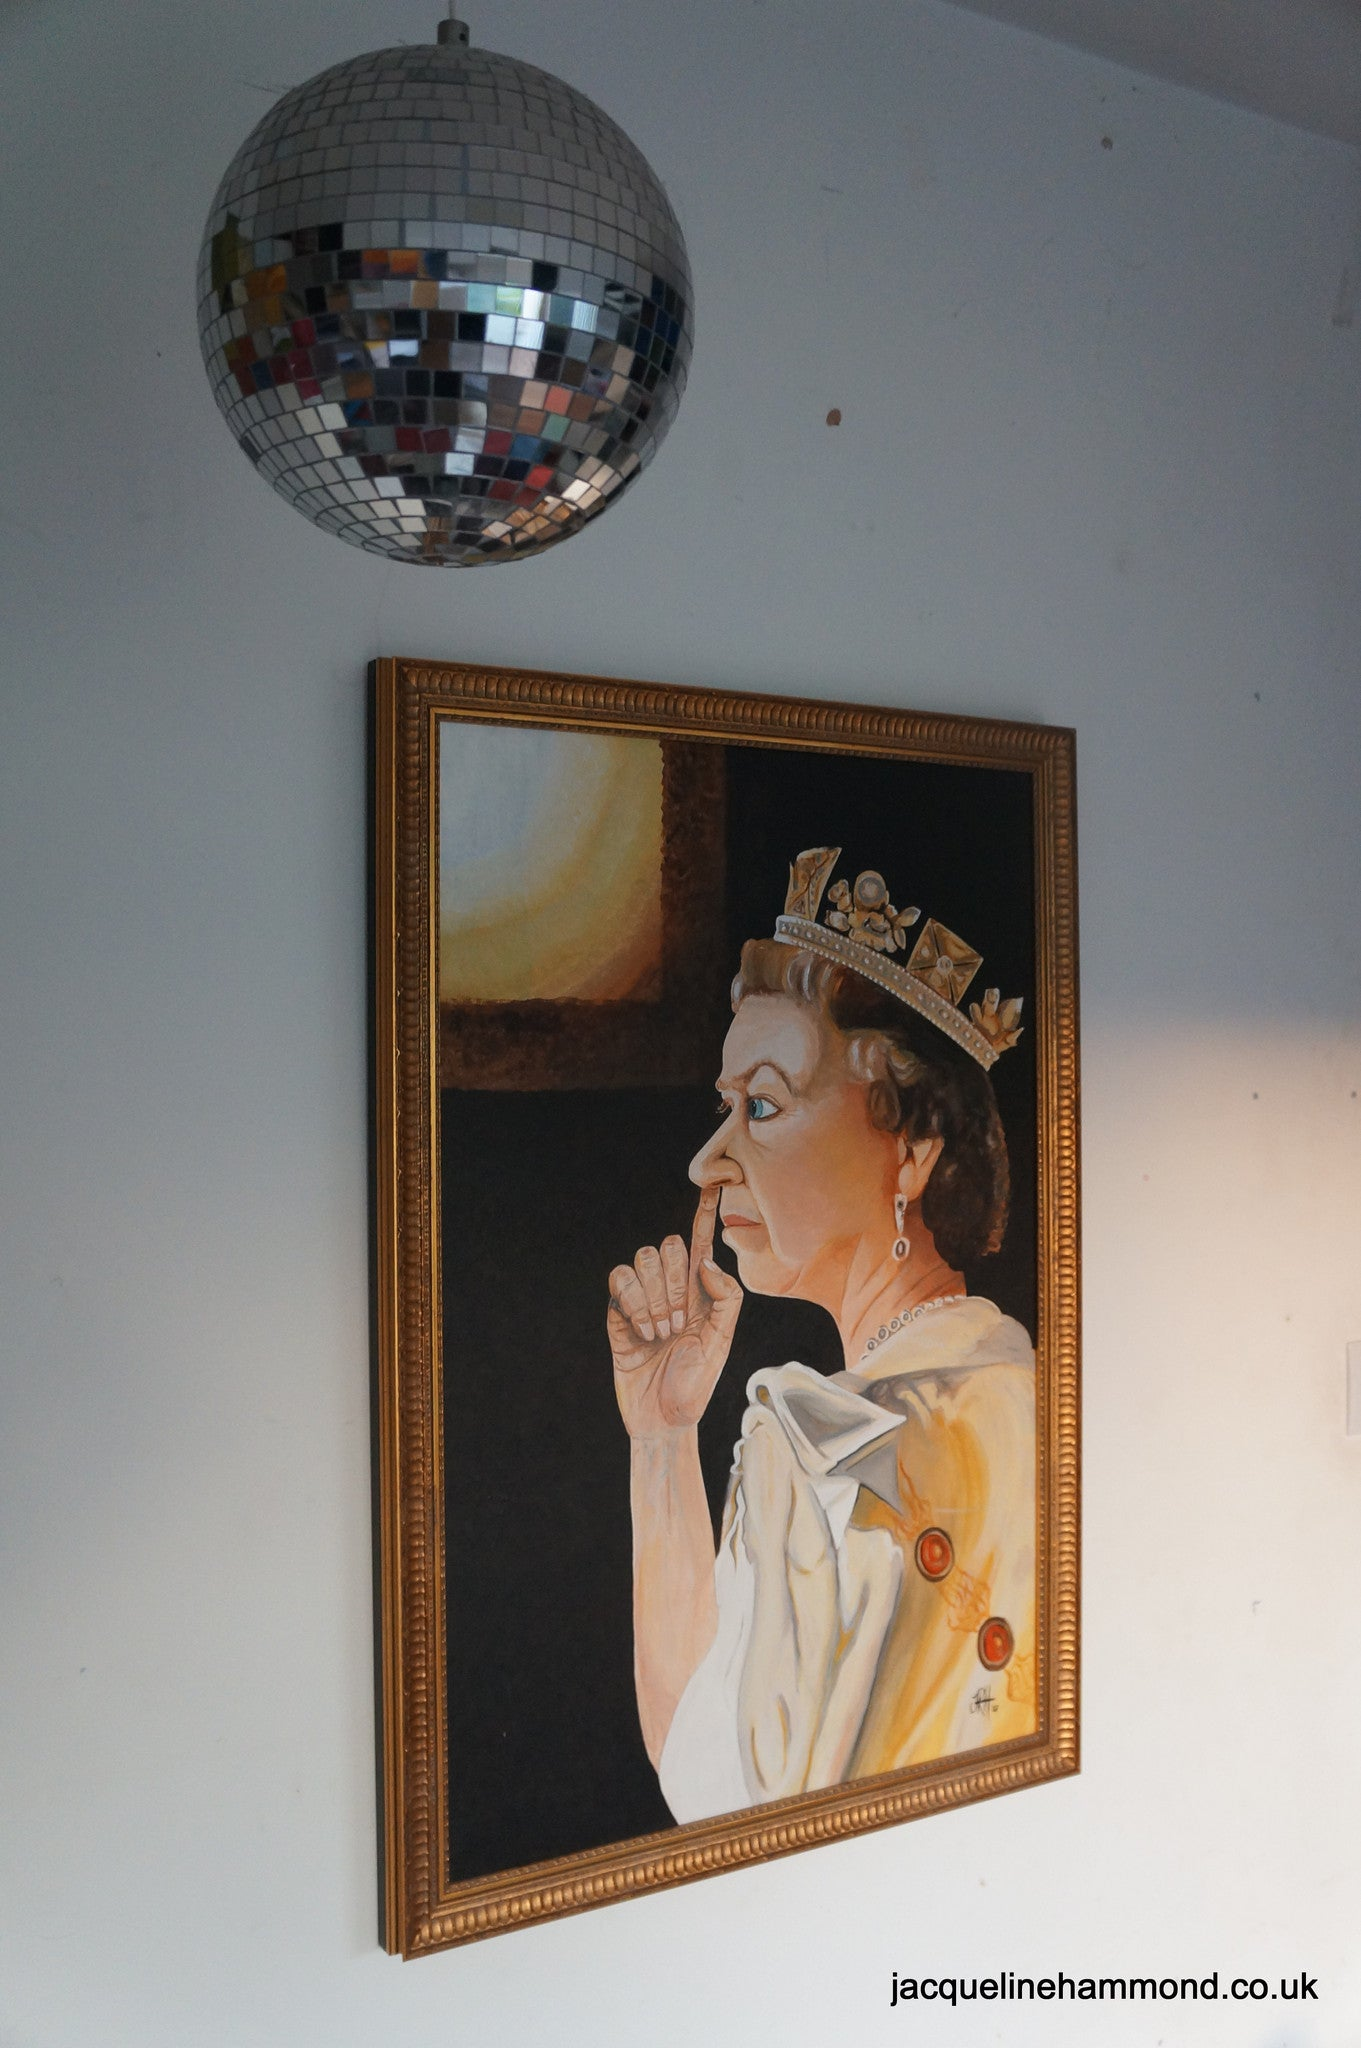 The Queen in a Moment of Privacy  Smart Deco Homeware Lighting and Art by Jacqueline hammond